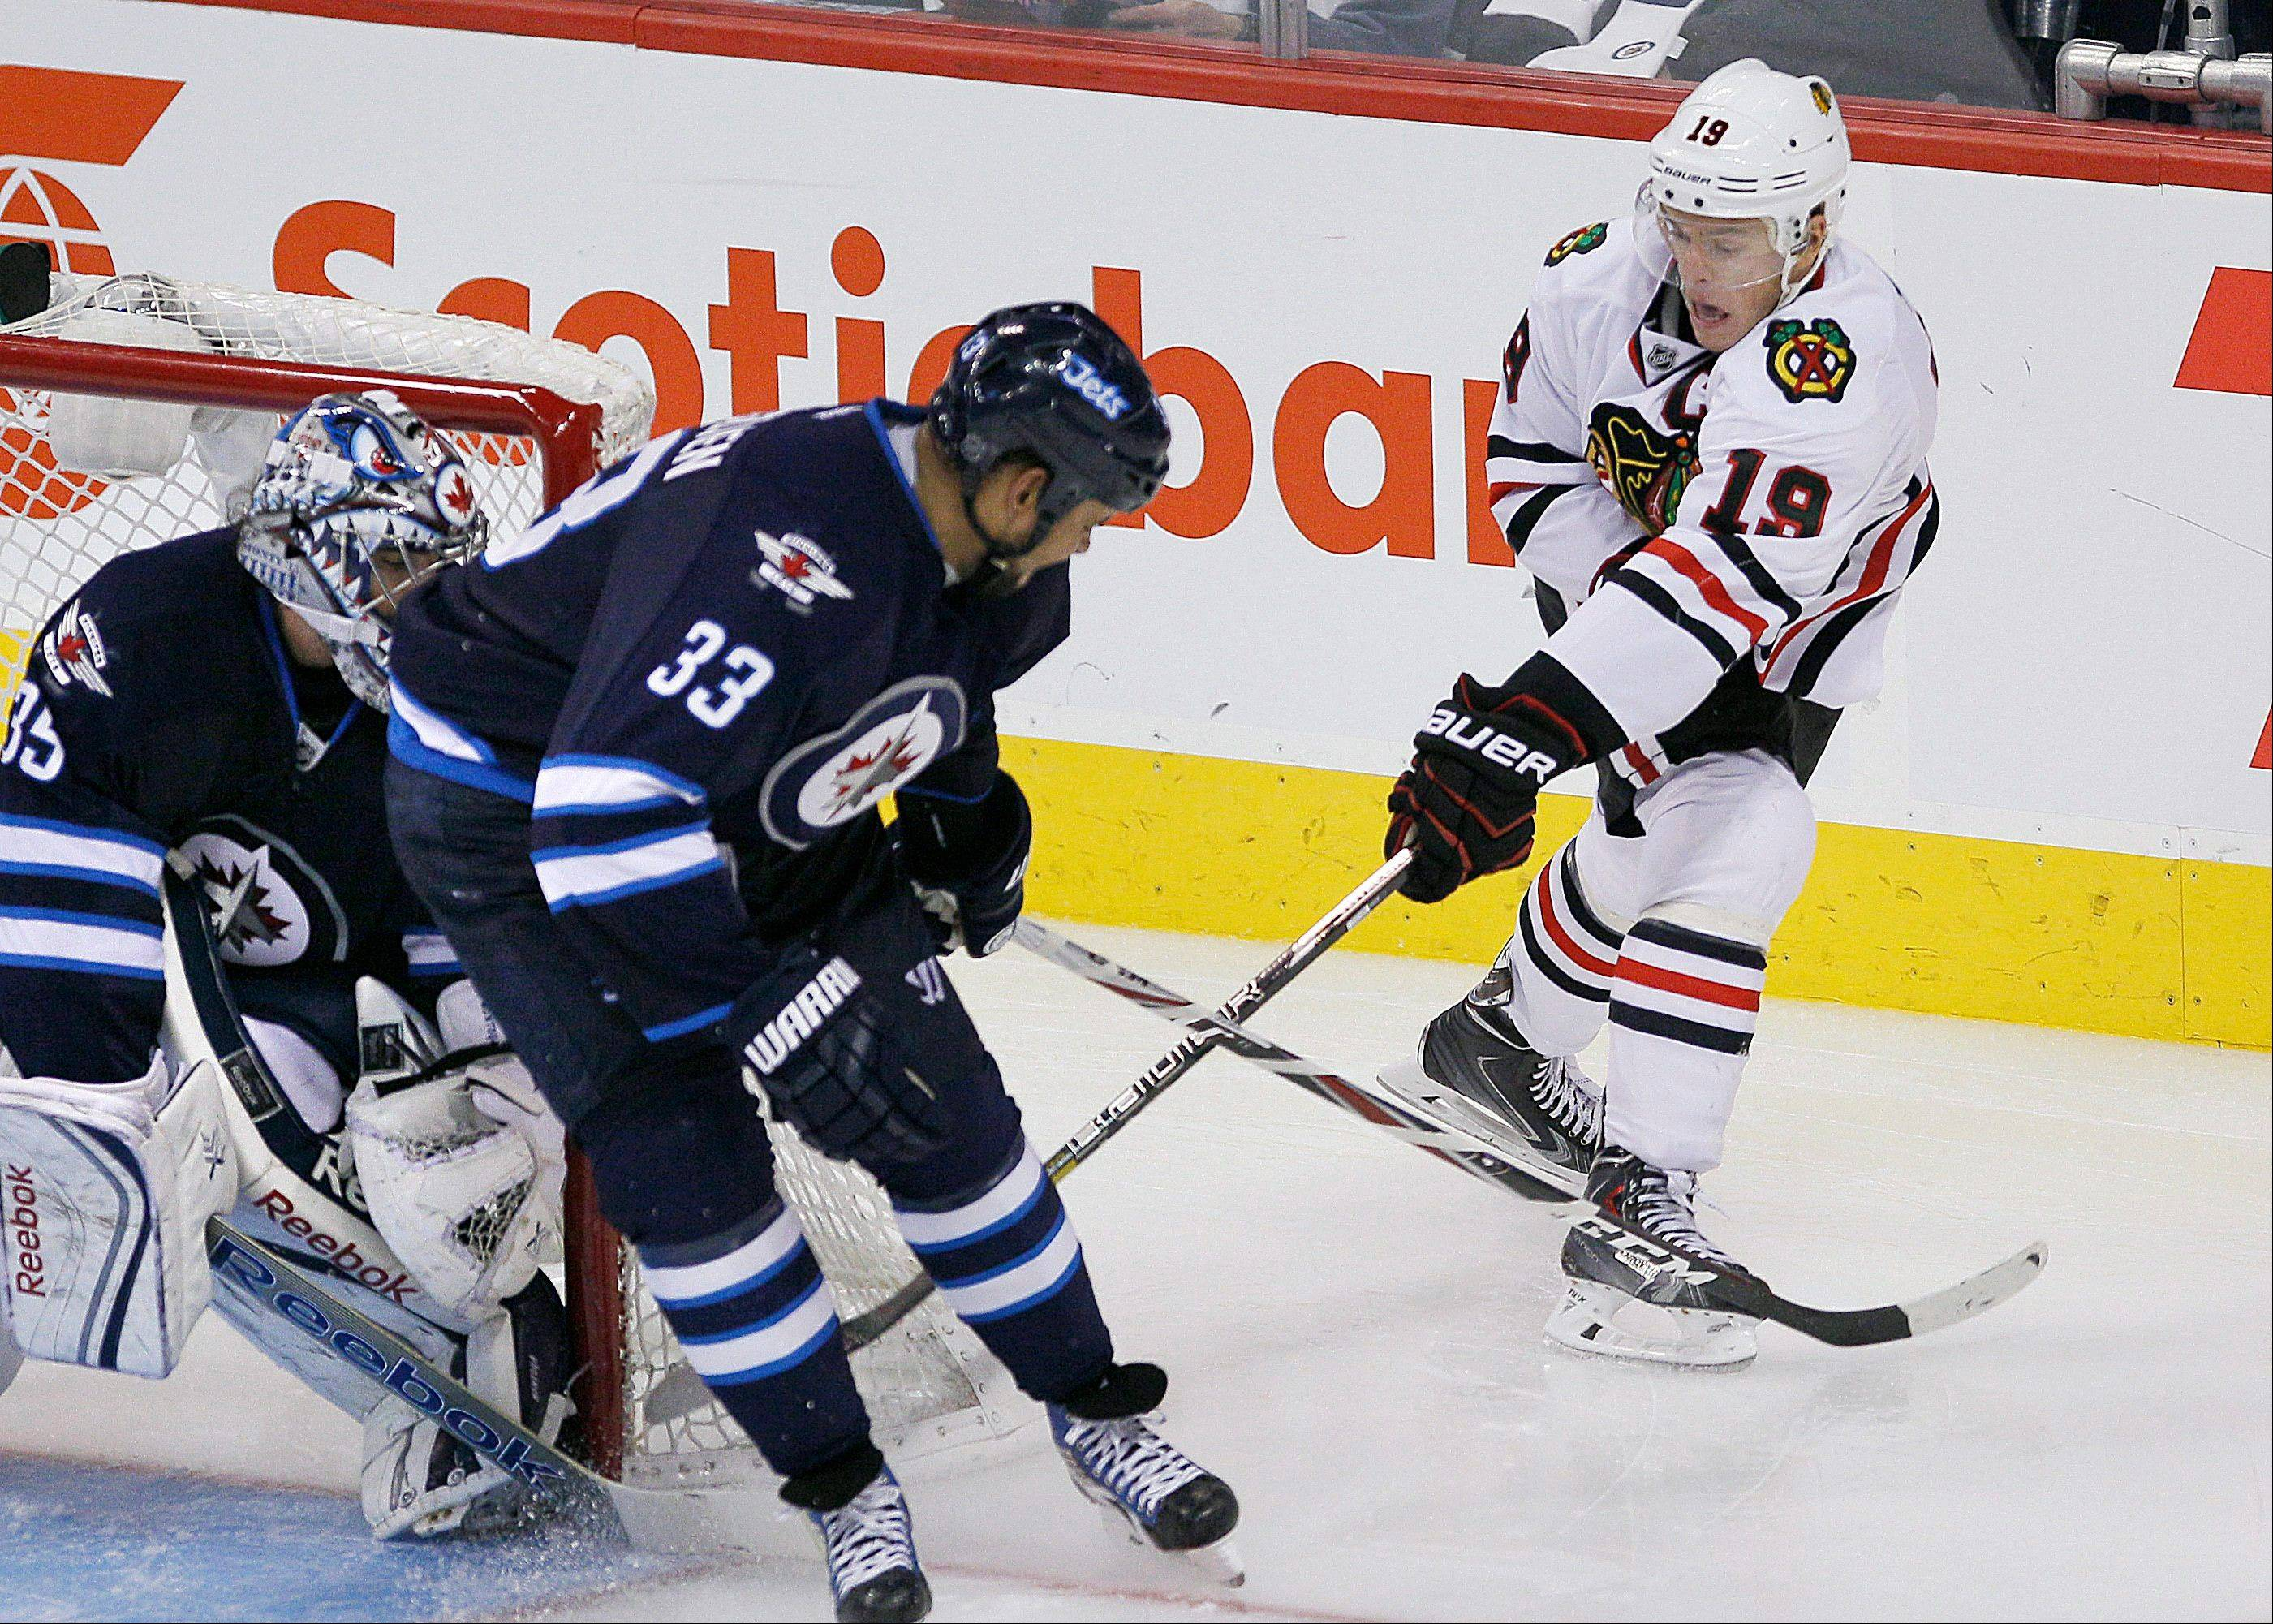 Jonathan Toews (19) attempts the wrap-around on Winnipeg Jets goaltender Al Montoya (35) as Dustin Byfuglien (33) defends during the third period of an NHL hockey game in Winnipeg, Manitoba, Saturday, Nov. 2, 2013. Chicago won 5-1.